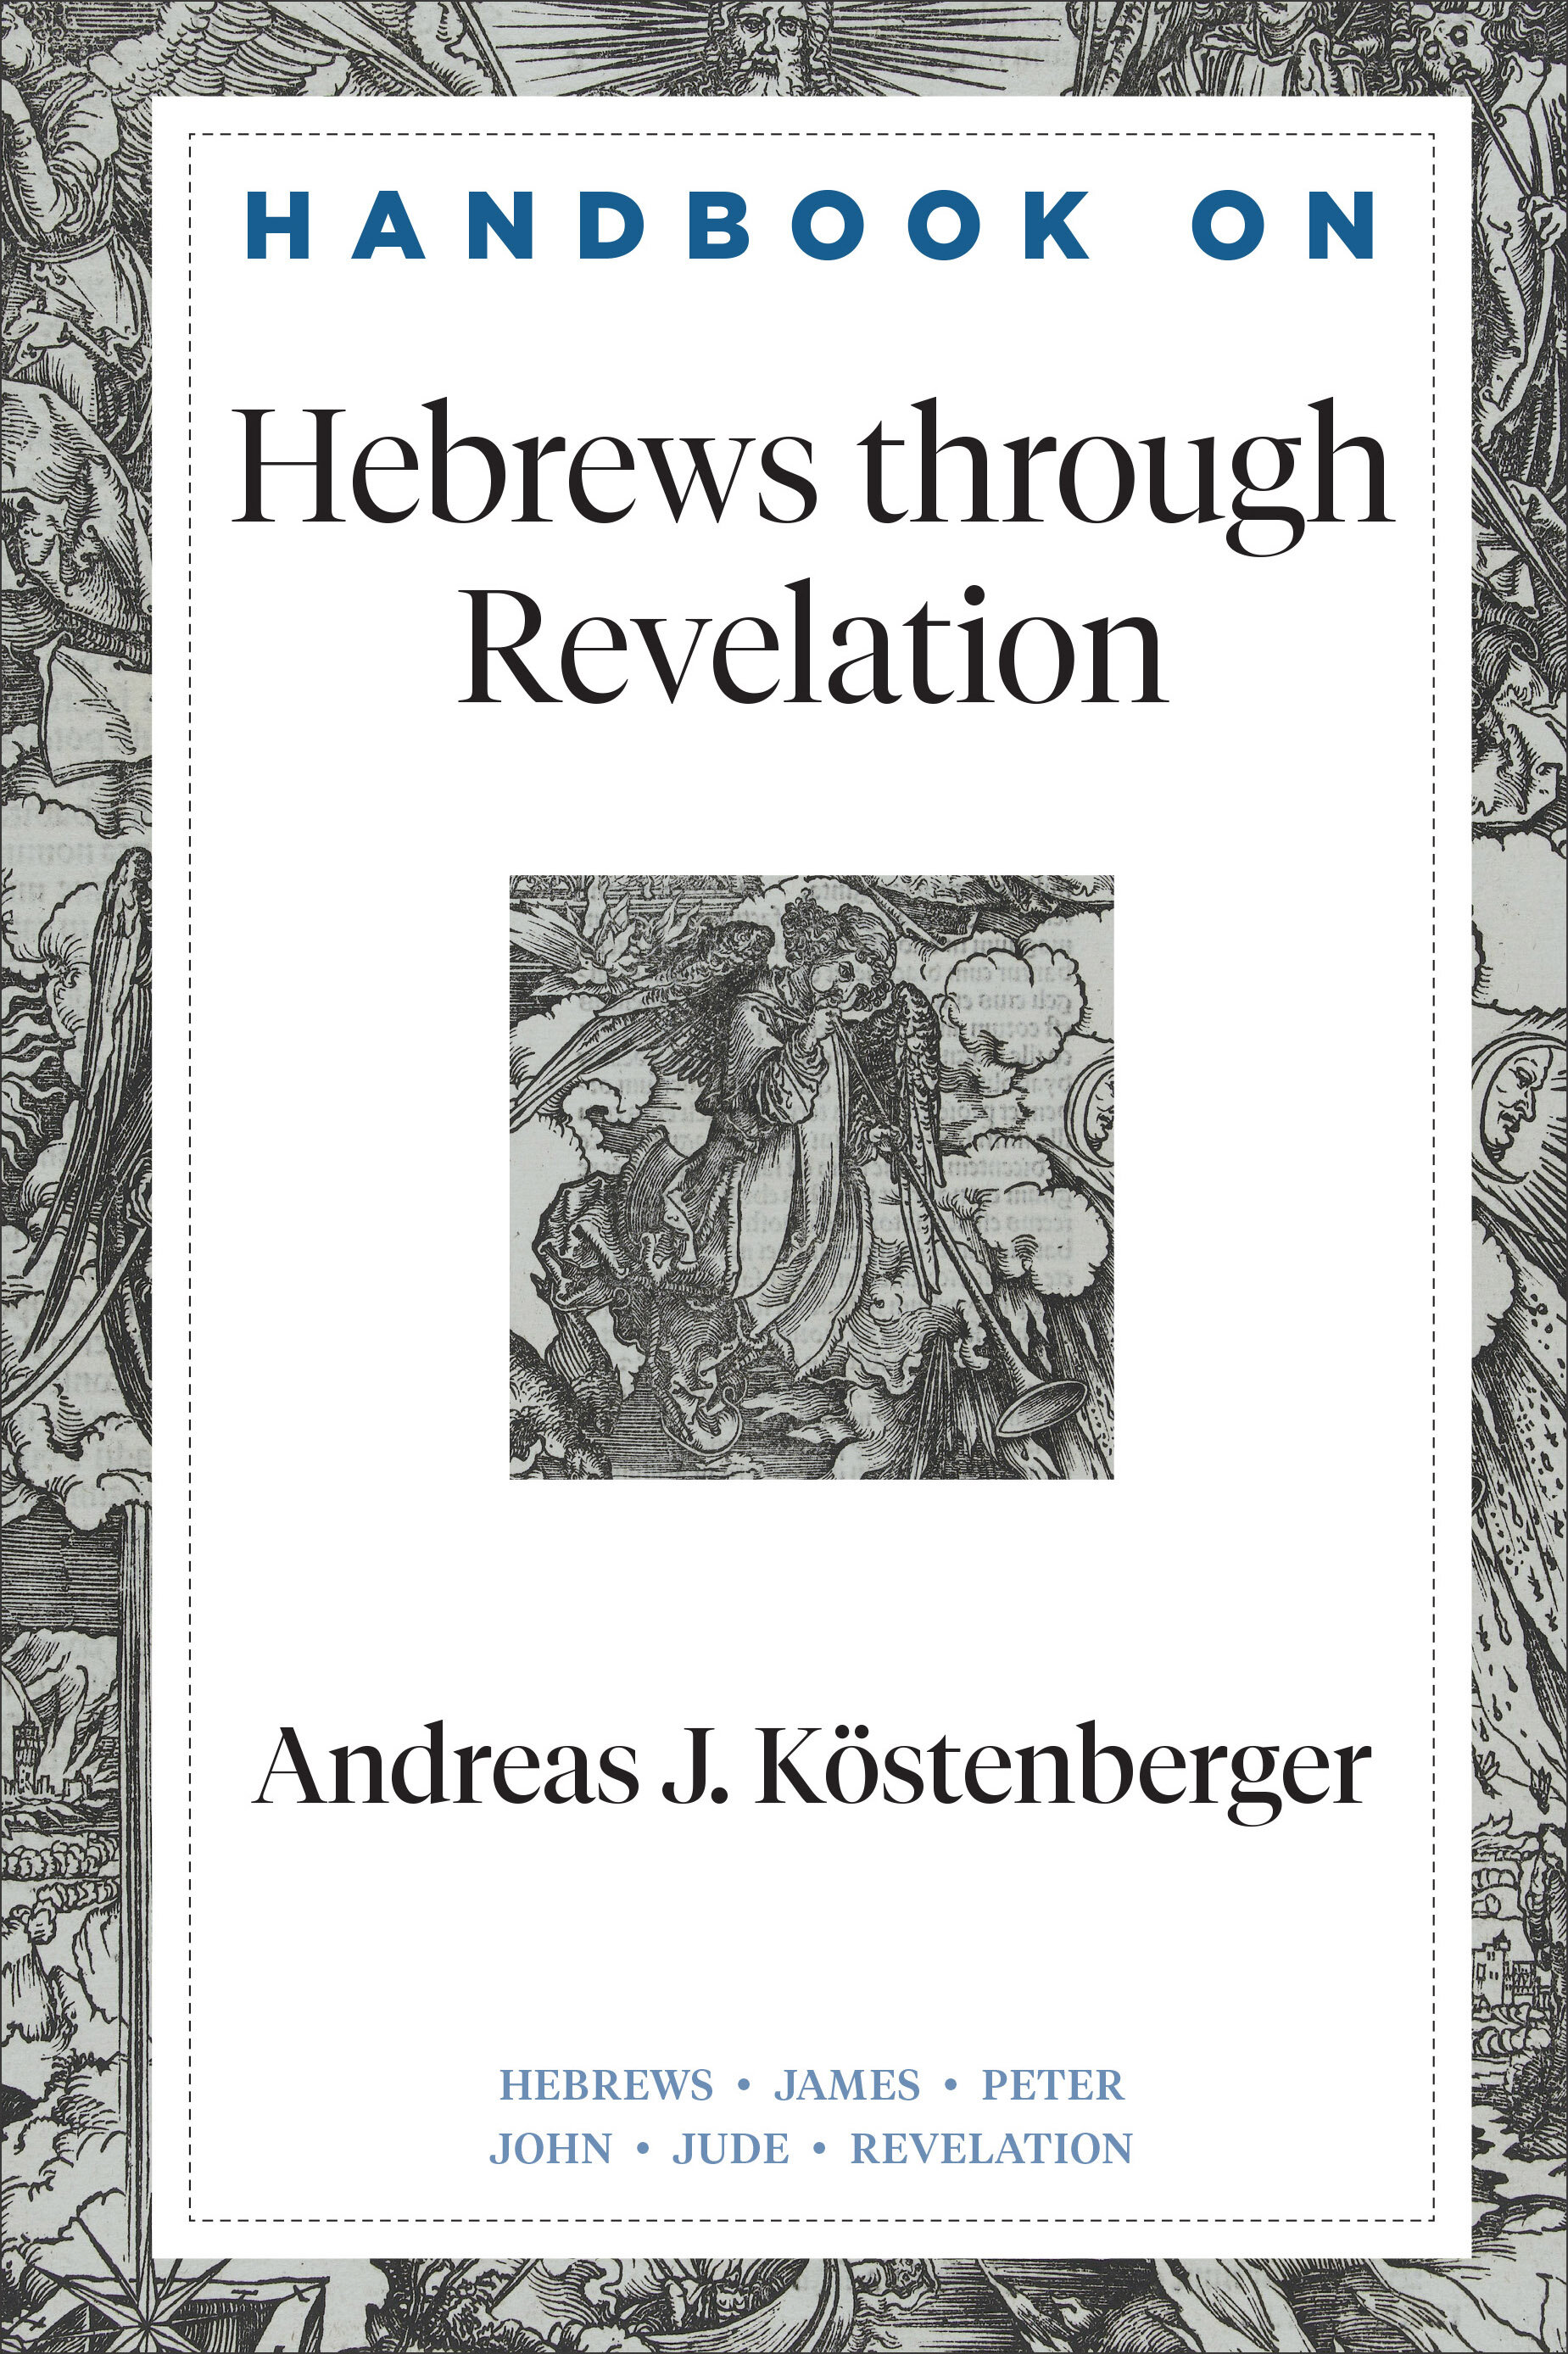 Handbook on Hebrews through Revelation (Handbooks on the New Testament)